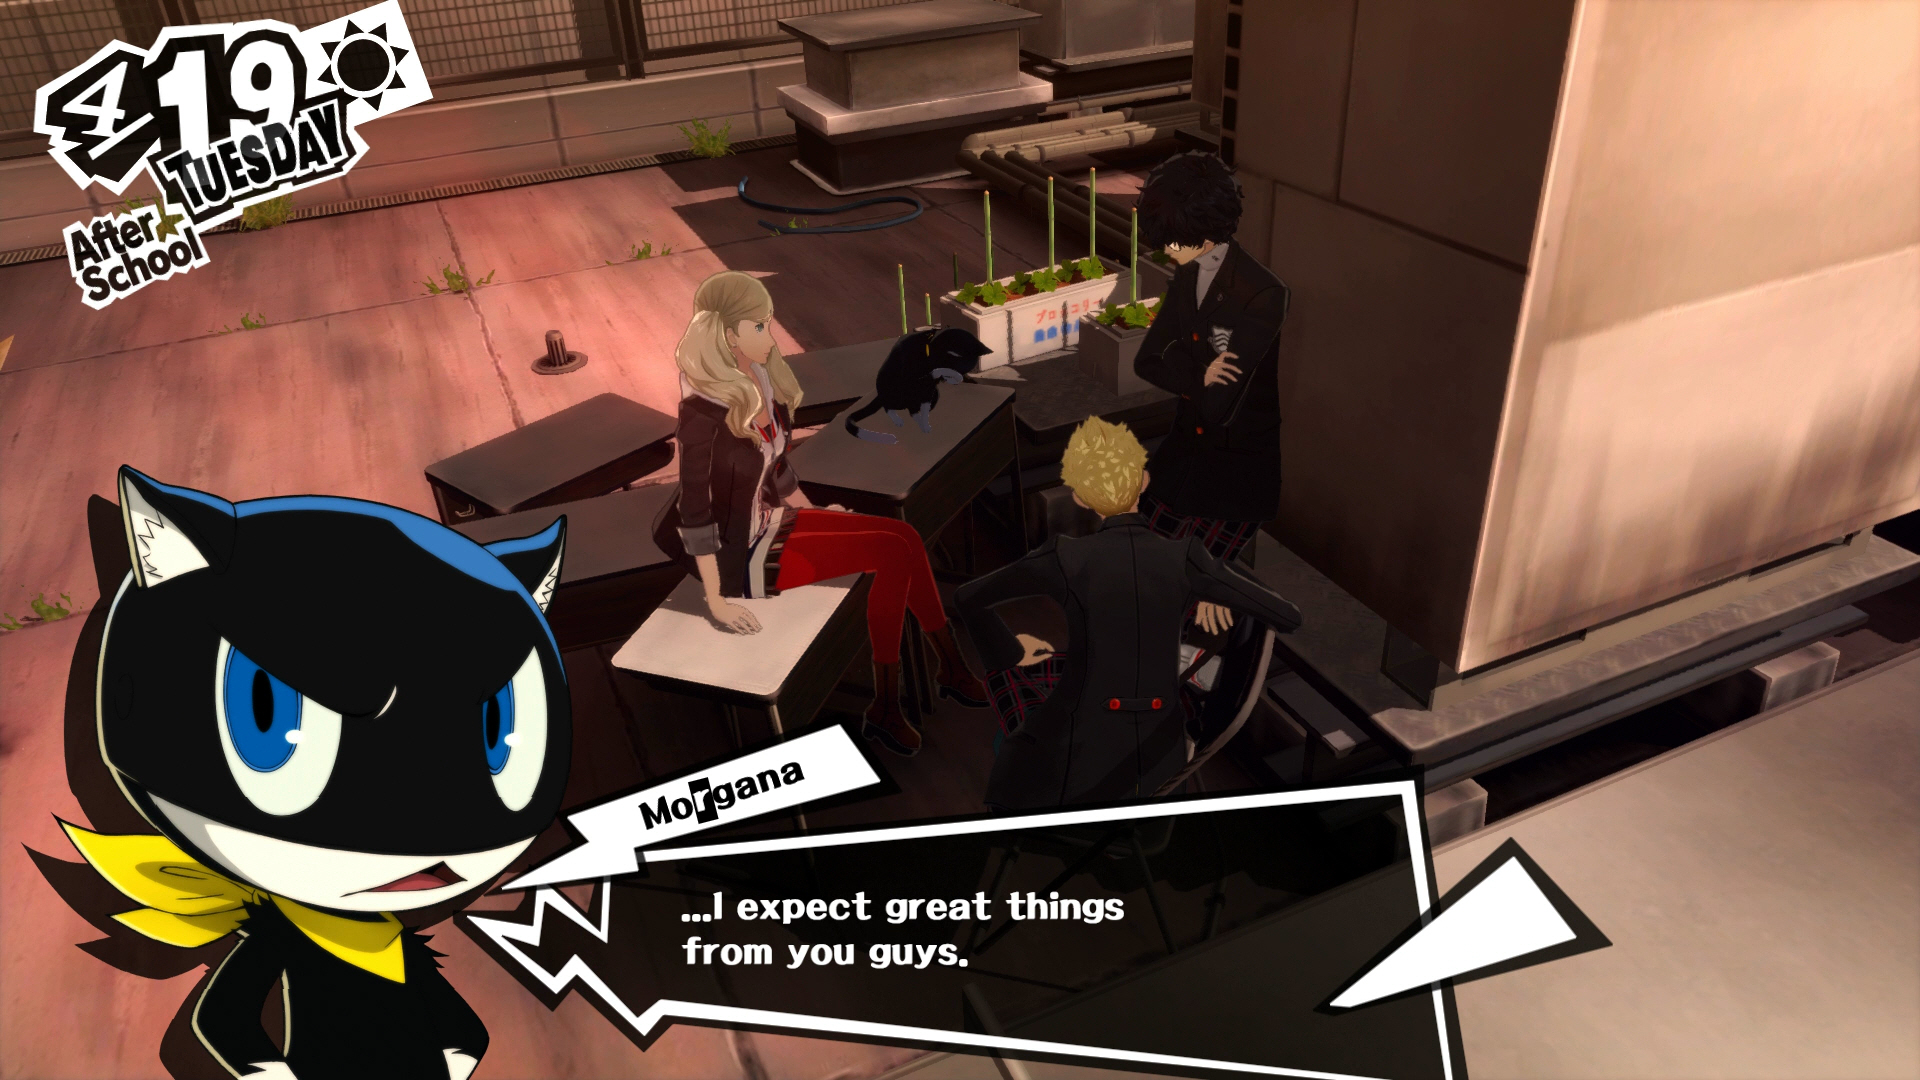 Screenshot from Persona 5. Three people are listening to a black cat speaking to him. An image of a cartoon cat saying '..I expect great things from you guys' is at the bottom of the image.